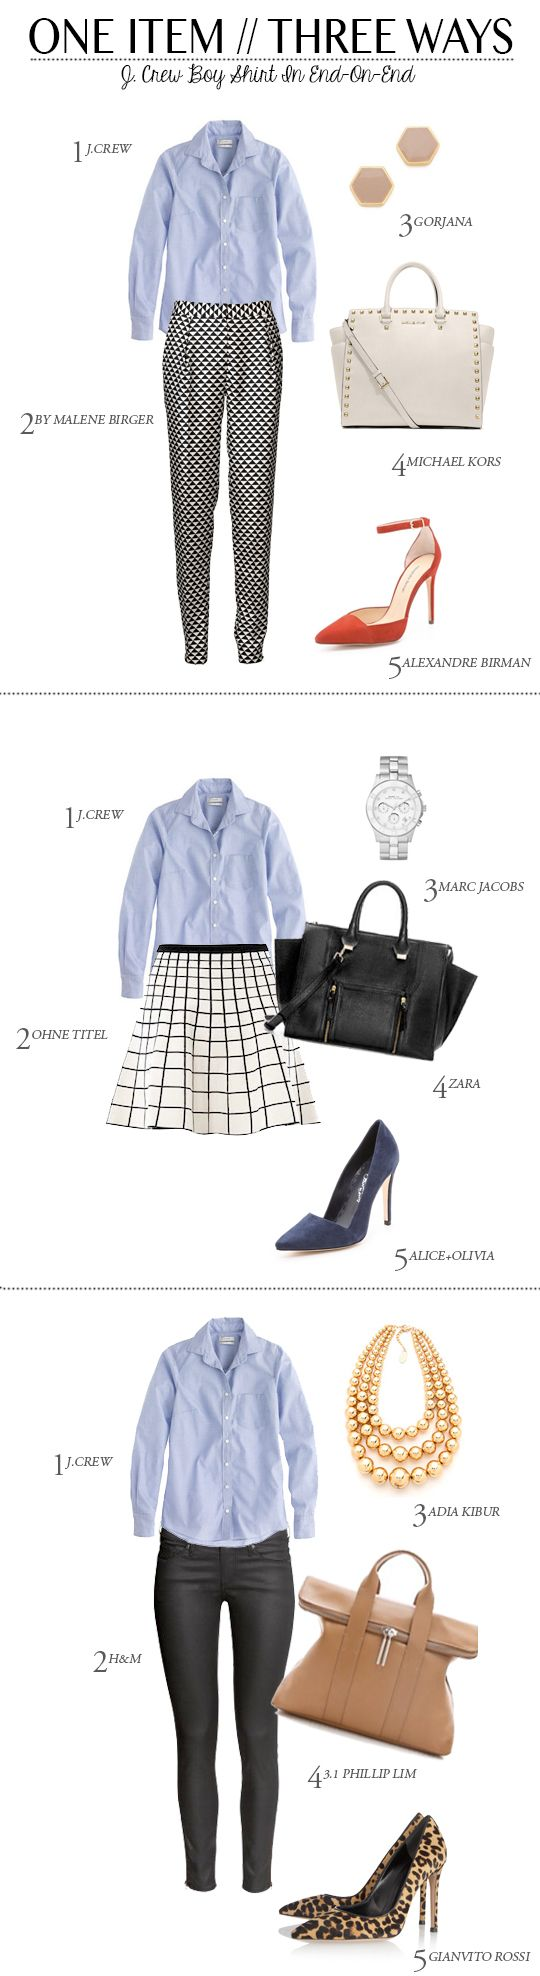 1 piece 3 looks: 1 piece 4 looks 1st Look: 1. J. Crew Boy Shirt // 2. By Malene Birger Pants // 3. Gorjana Earrings // 4. Michael Kors Selma Bag // 5. Alexandre Birman Shoes 2nd Look: 1. J. Crew Boy Shirt // 2. Ohne Titel Skirt // 3. Marc Jacobs Watch /